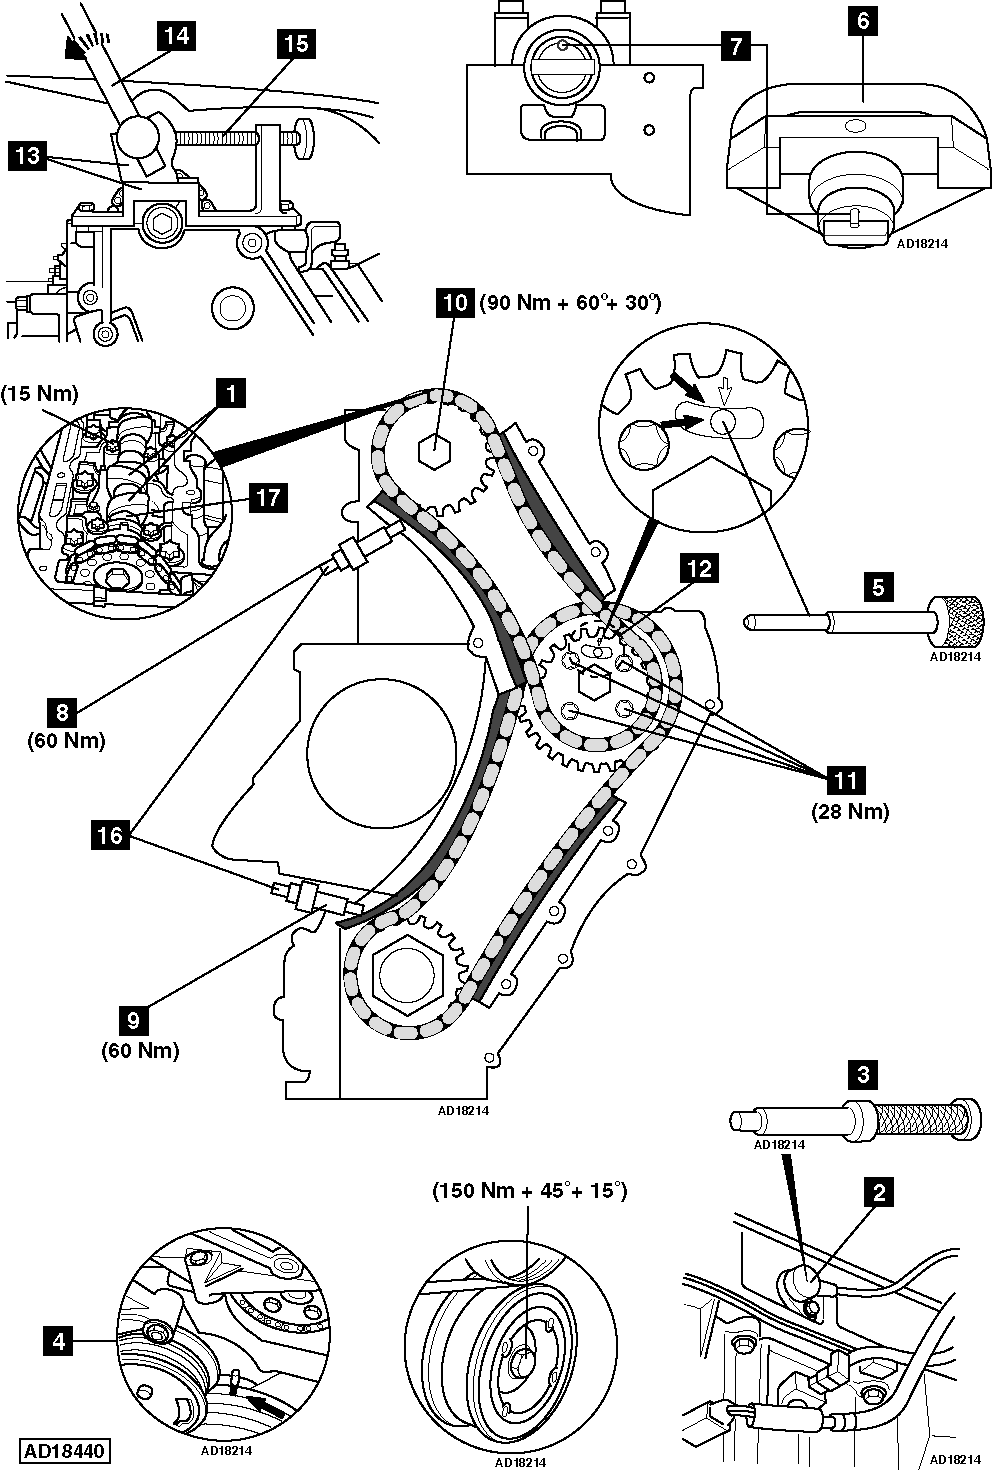 hight resolution of 2003 ecotec engine diagram wiring diagram list 2003 ecotec engine diagram